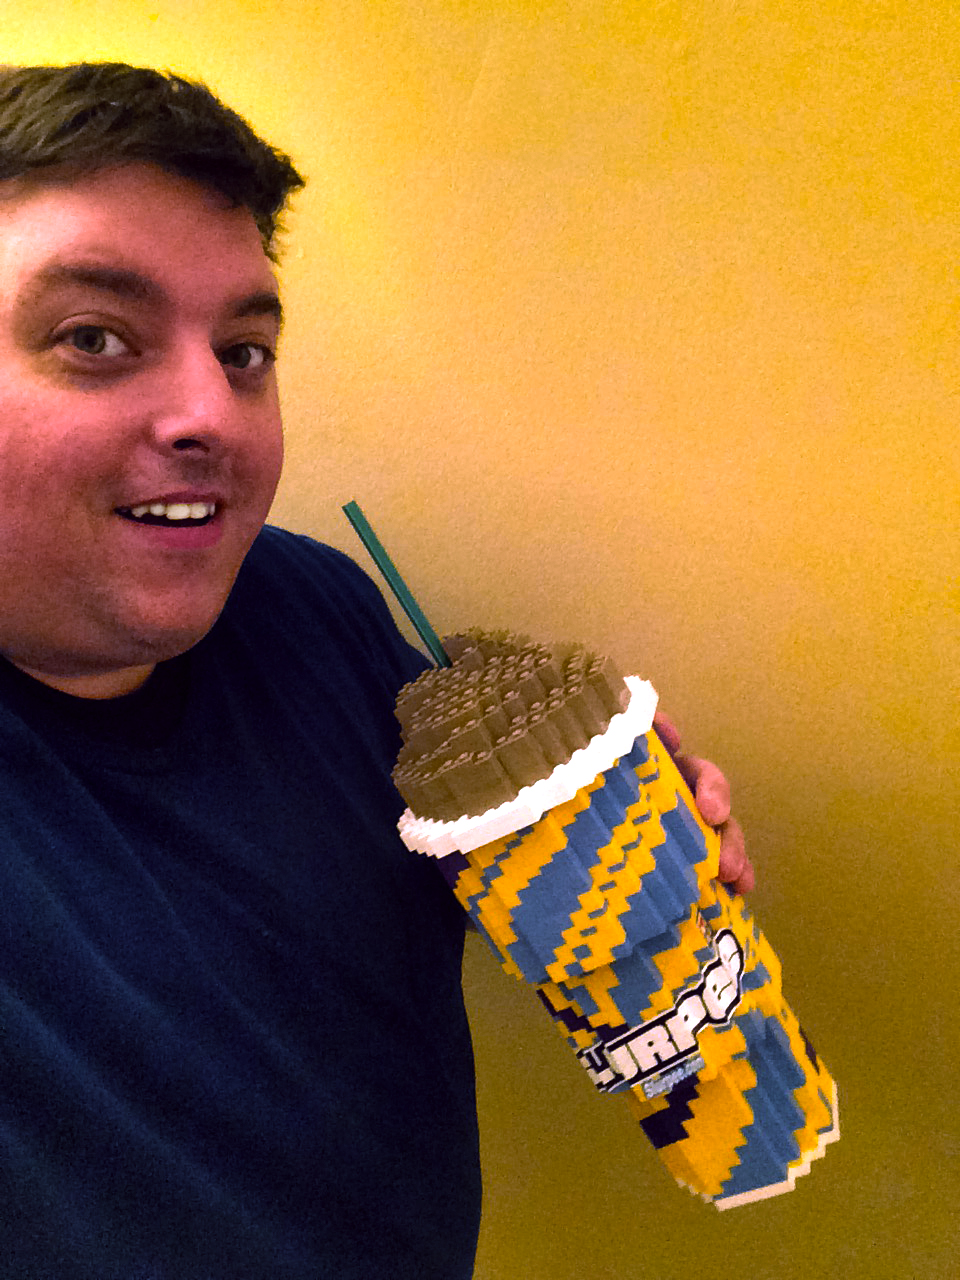 Brian with Slurpee (cleaned)